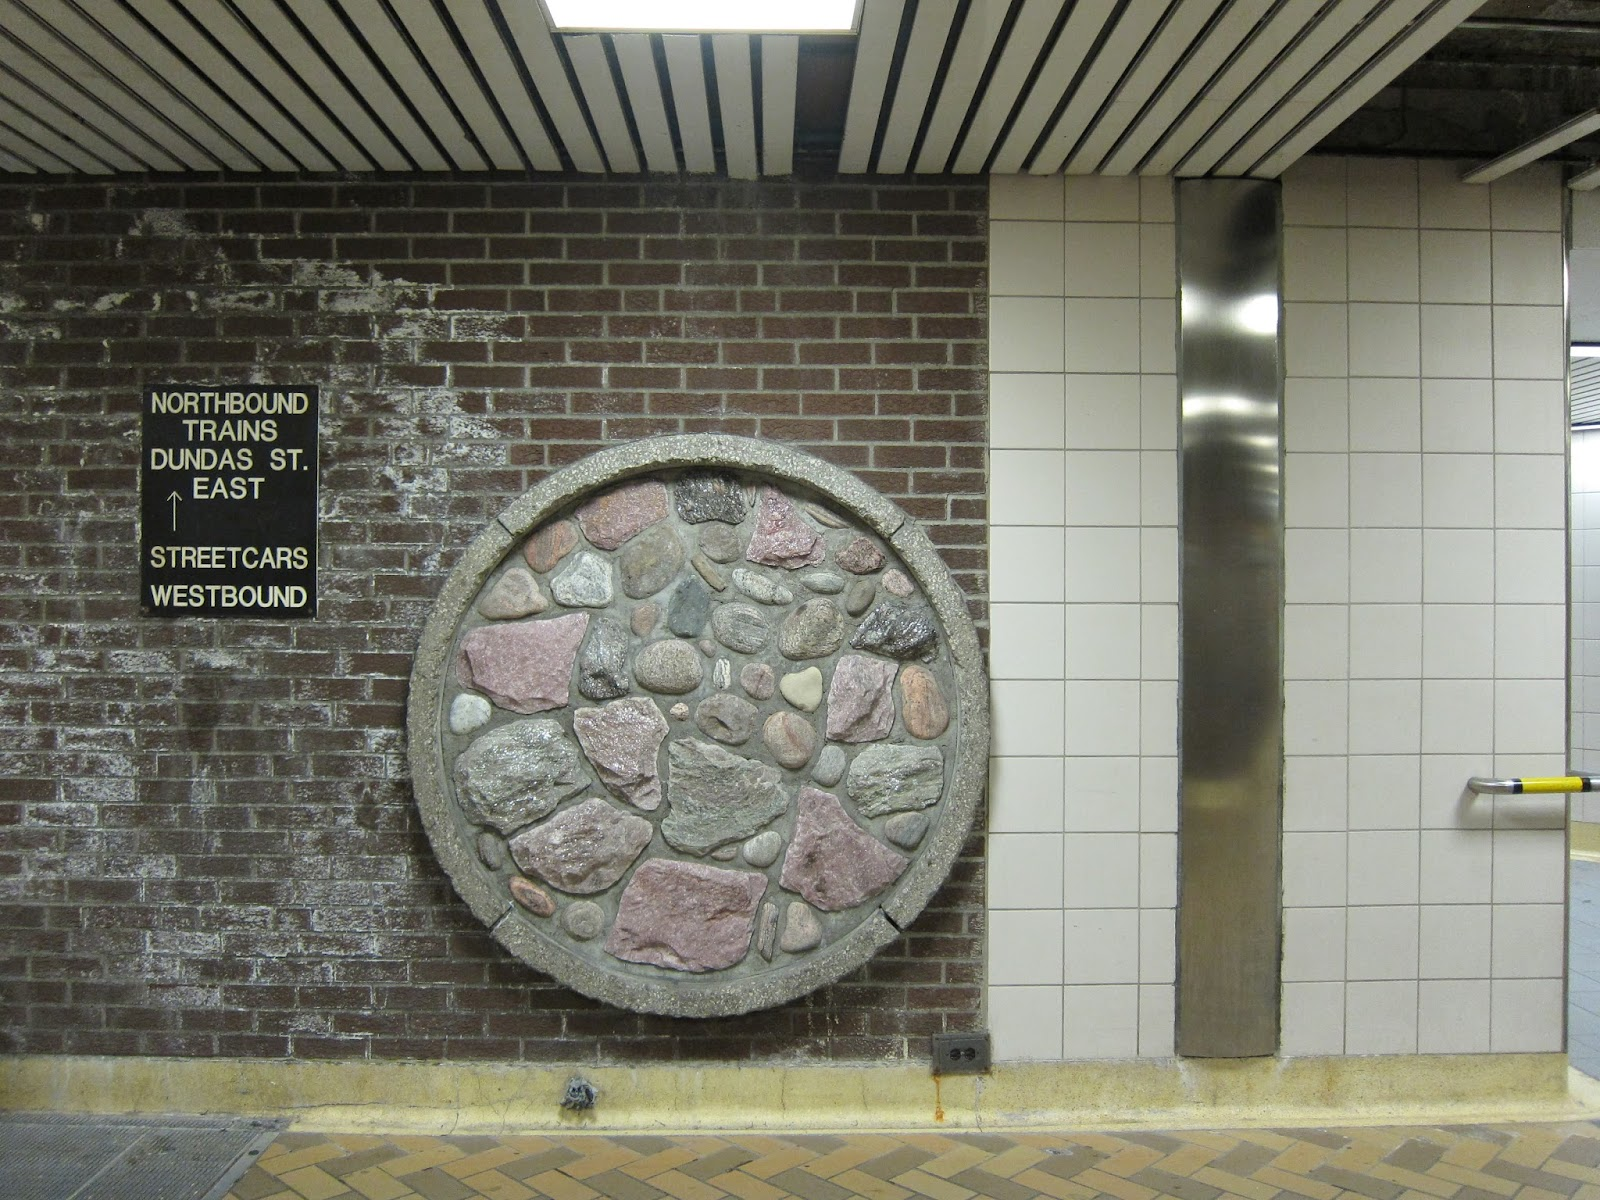 Rock decoration at Dundas station